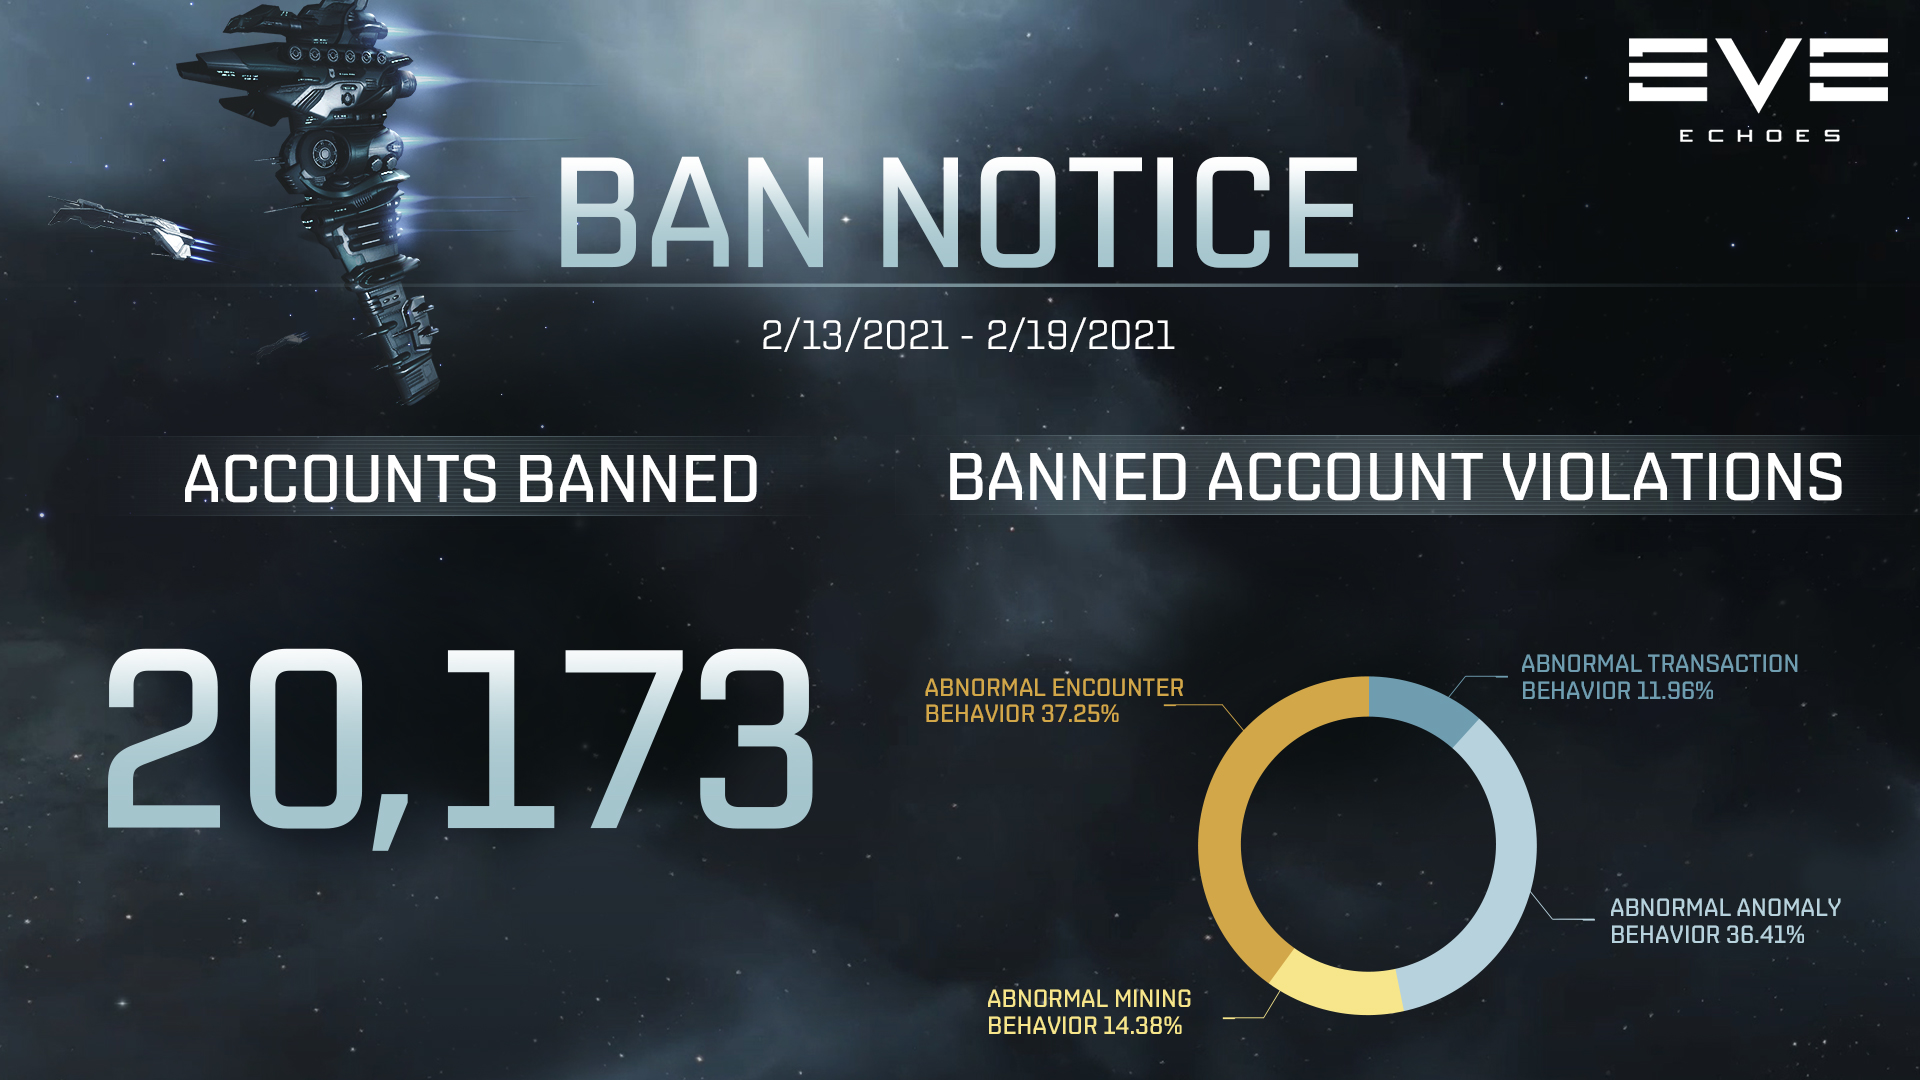 Ban Notice for 02/13-02/19